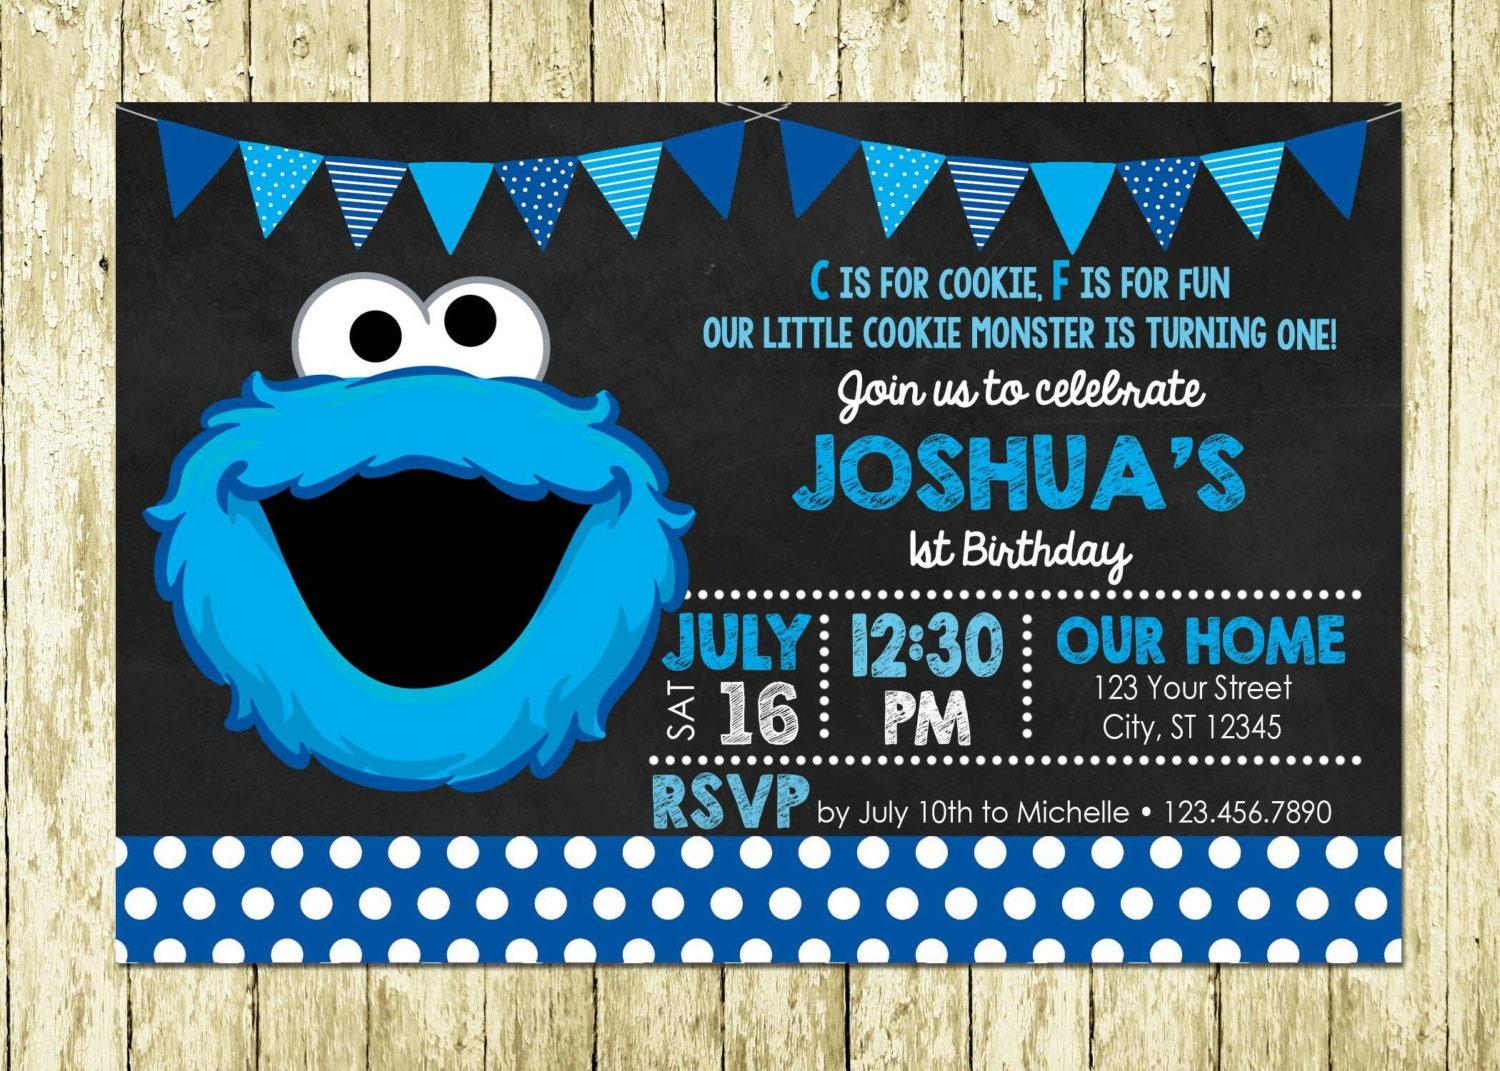 Plaza Sesamo Cookie Monster impreso invitación de pizarra